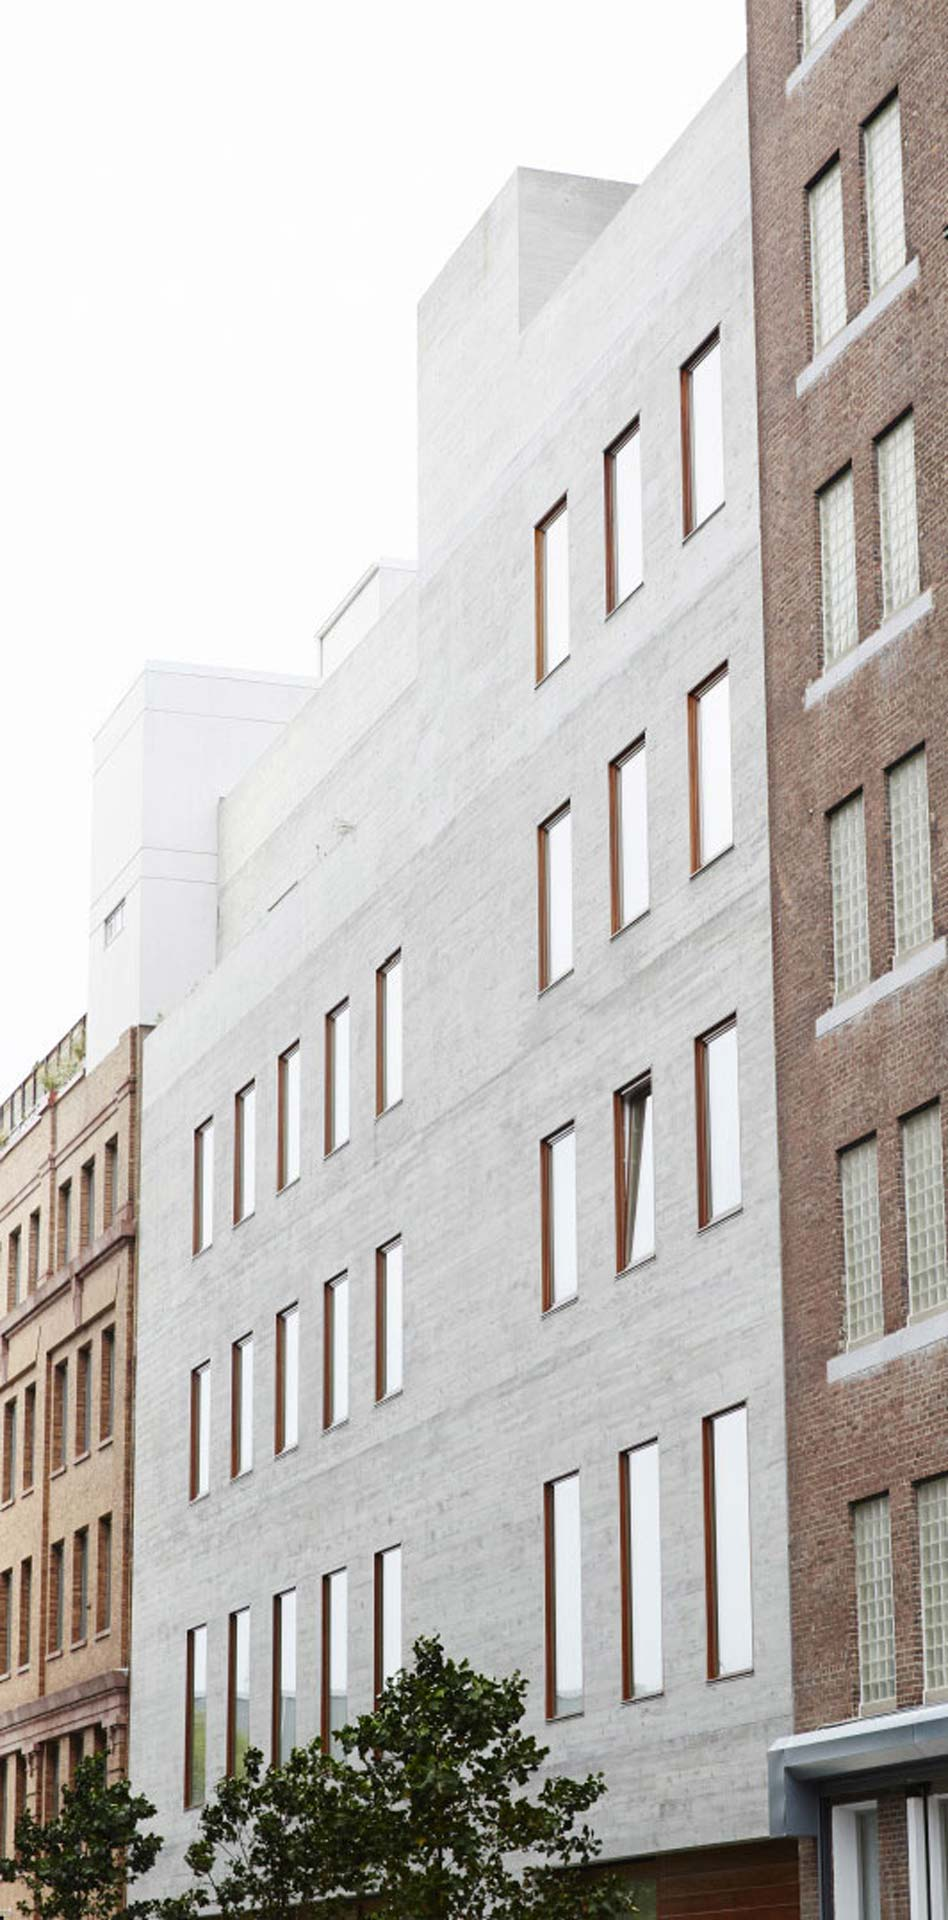 Annabelle Selldorf's David Zwirner Gallery on 20th Street